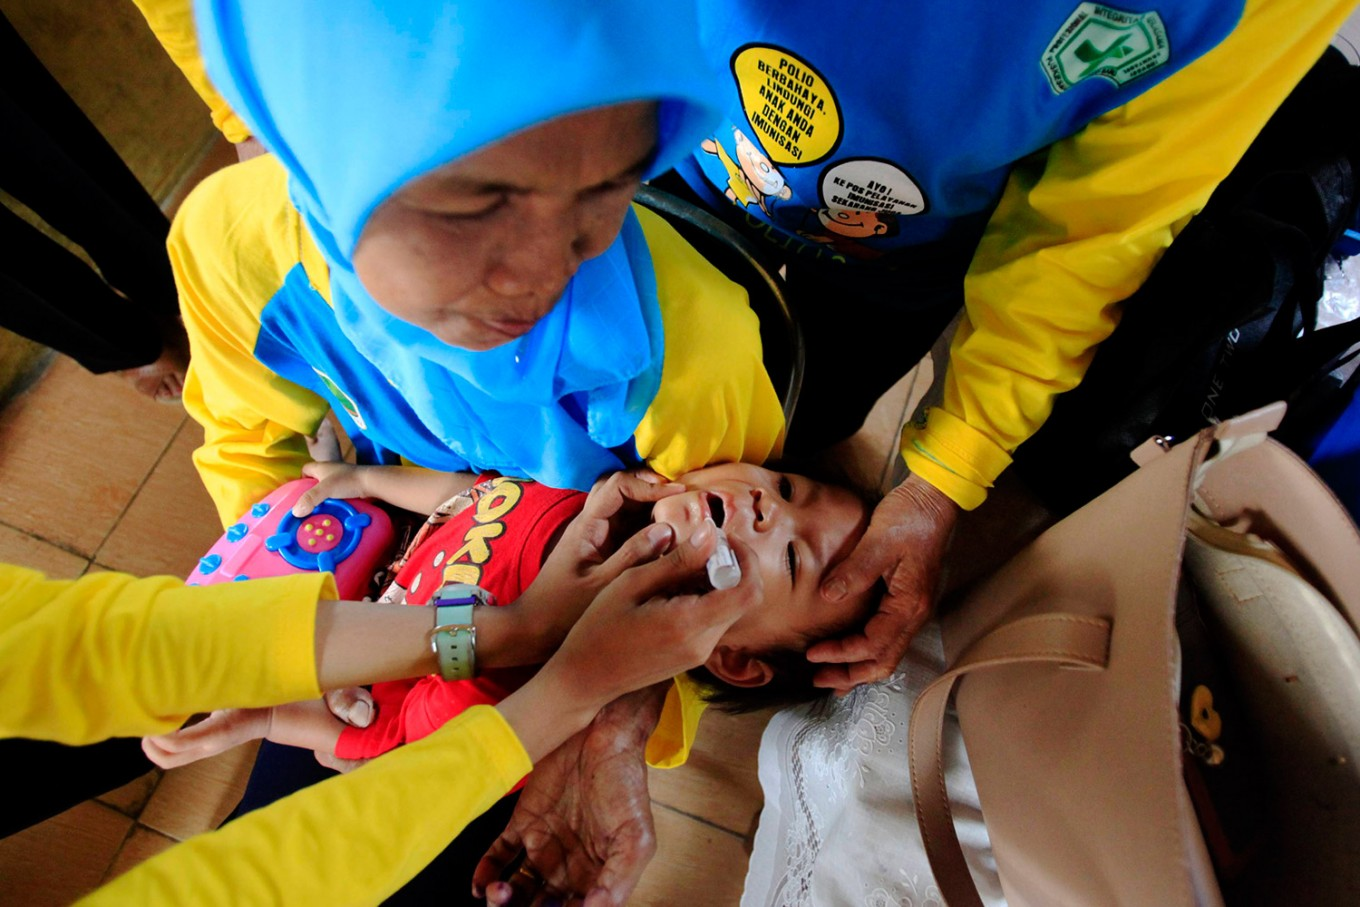 Indonesia has 1.4 million neglected children: Ministry